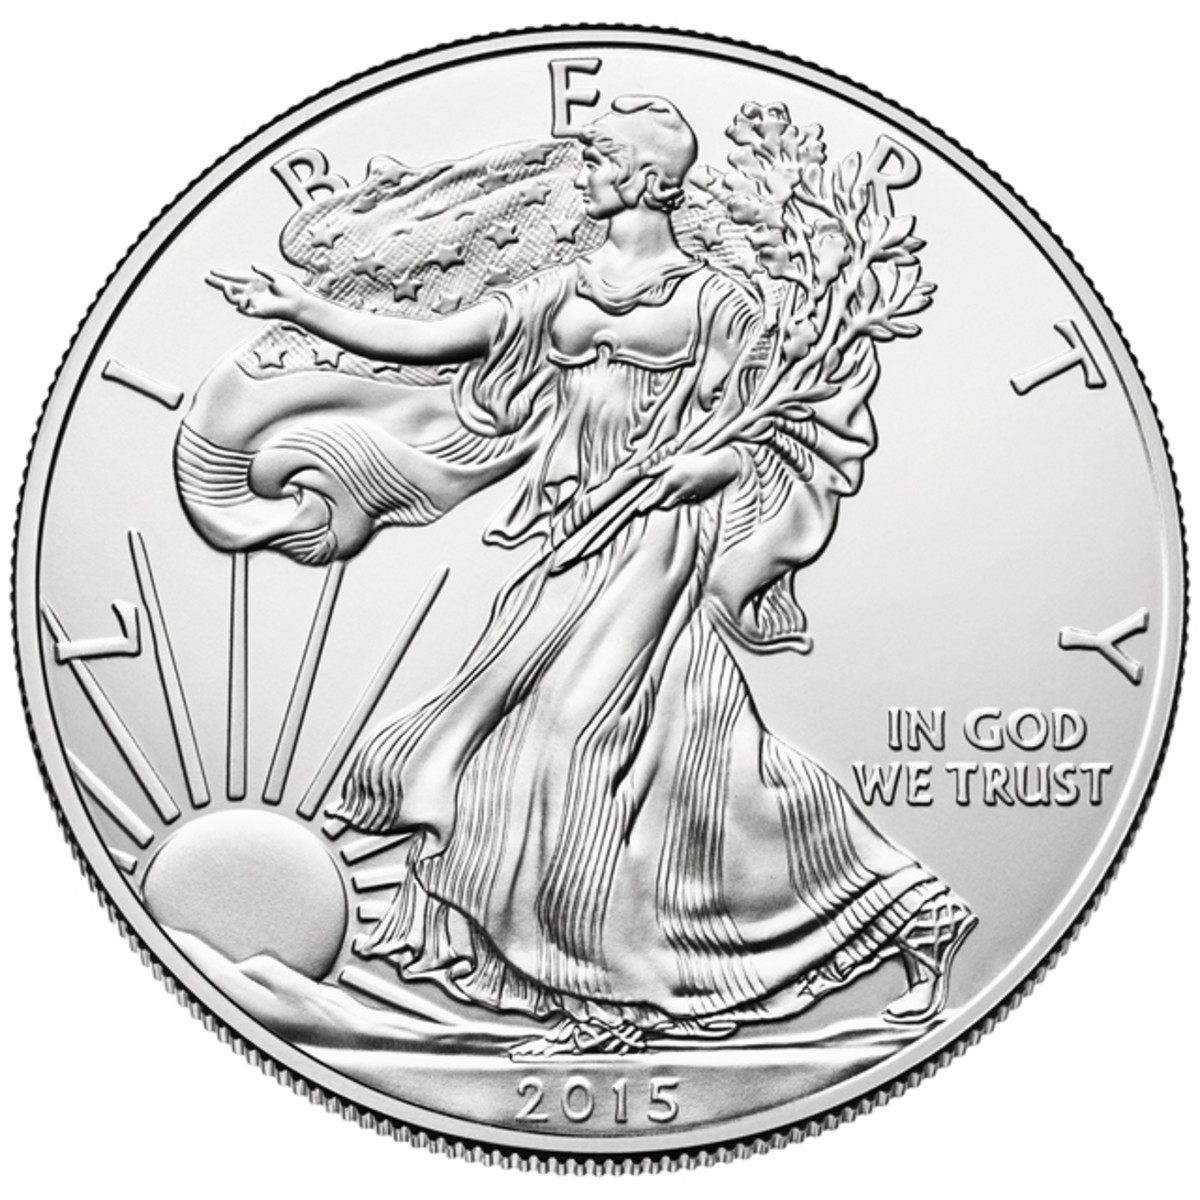 Any competitors for silver Eagle?